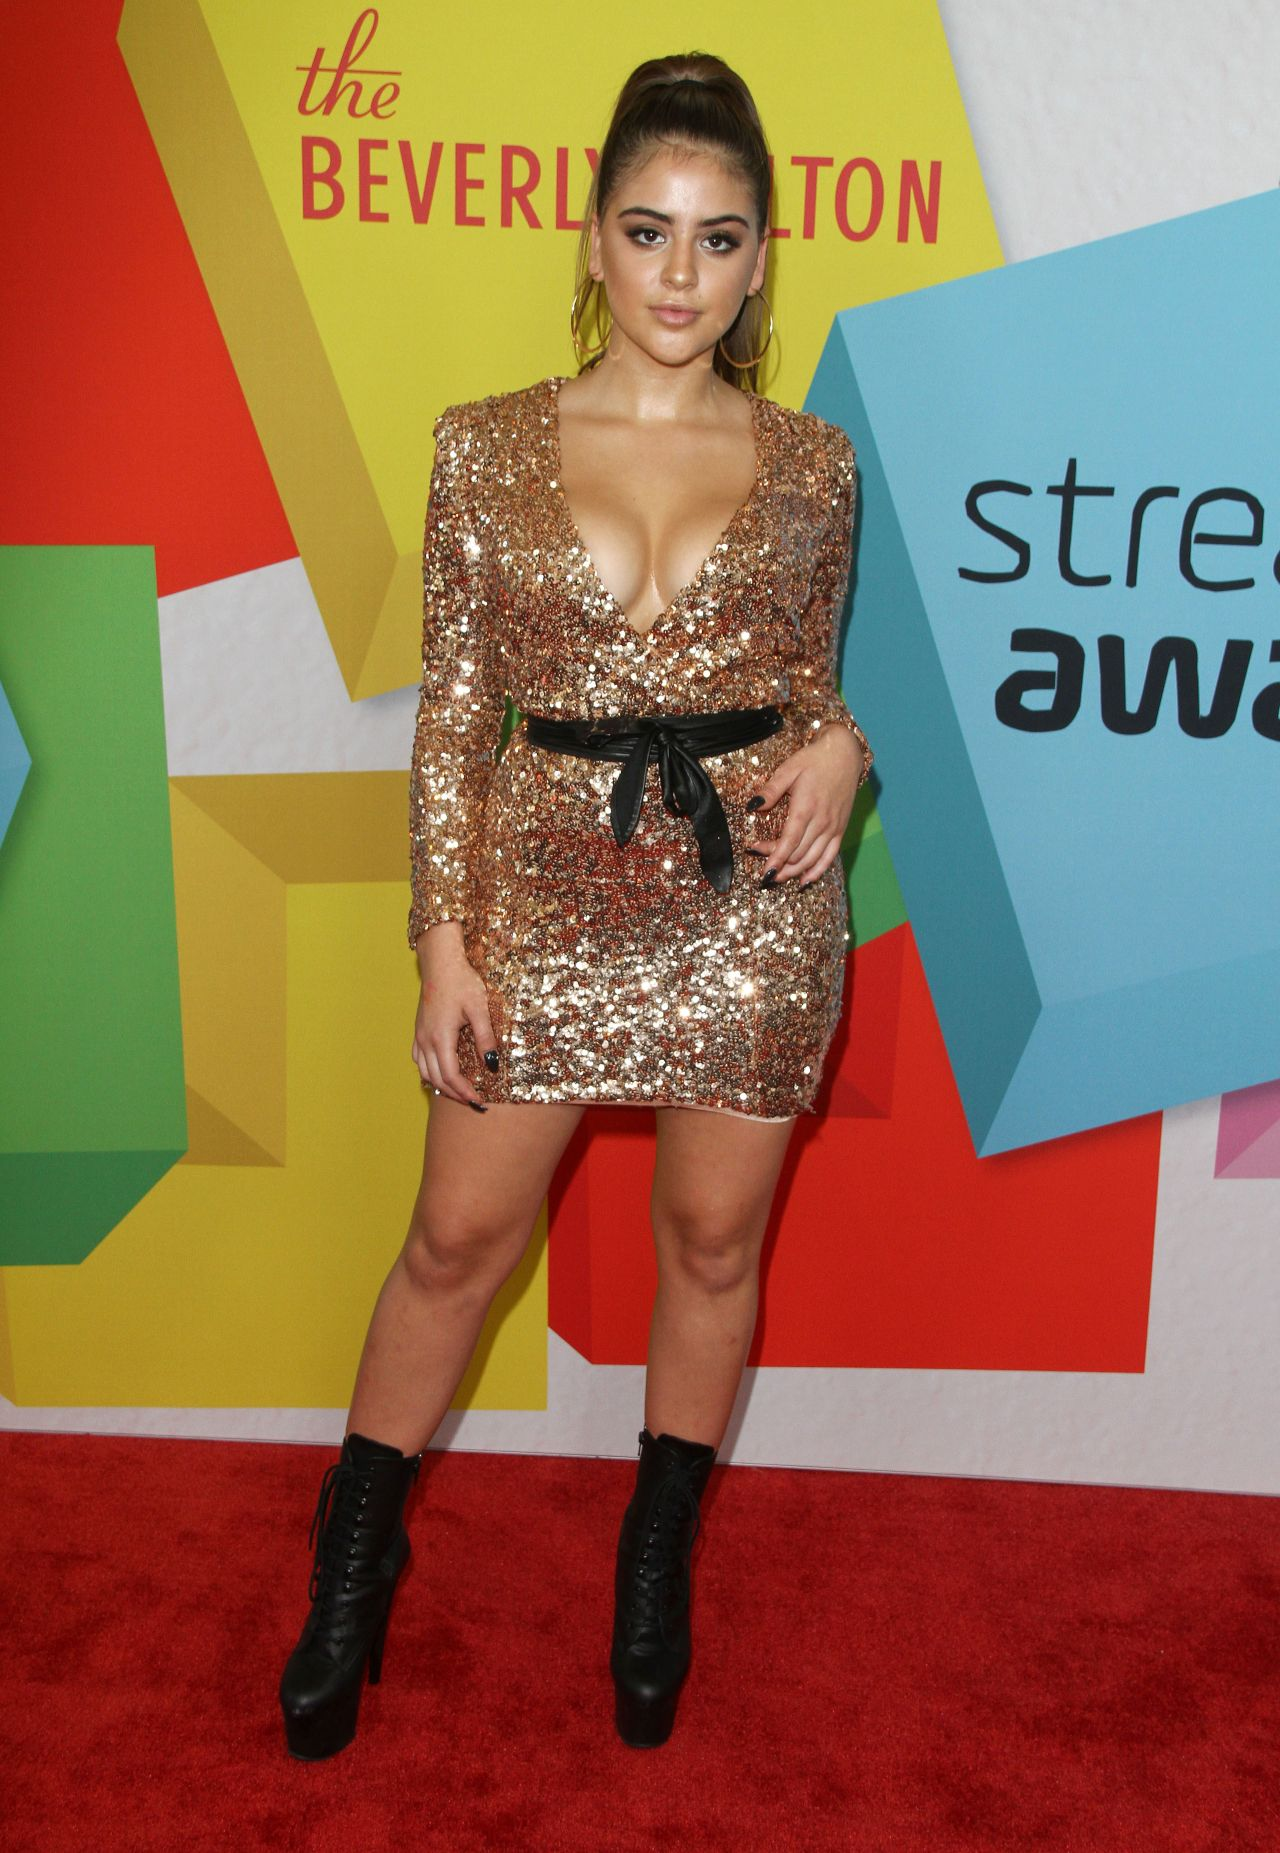 Natalie alzate 2019 streamy awards in beverly hills nude (93 photos)